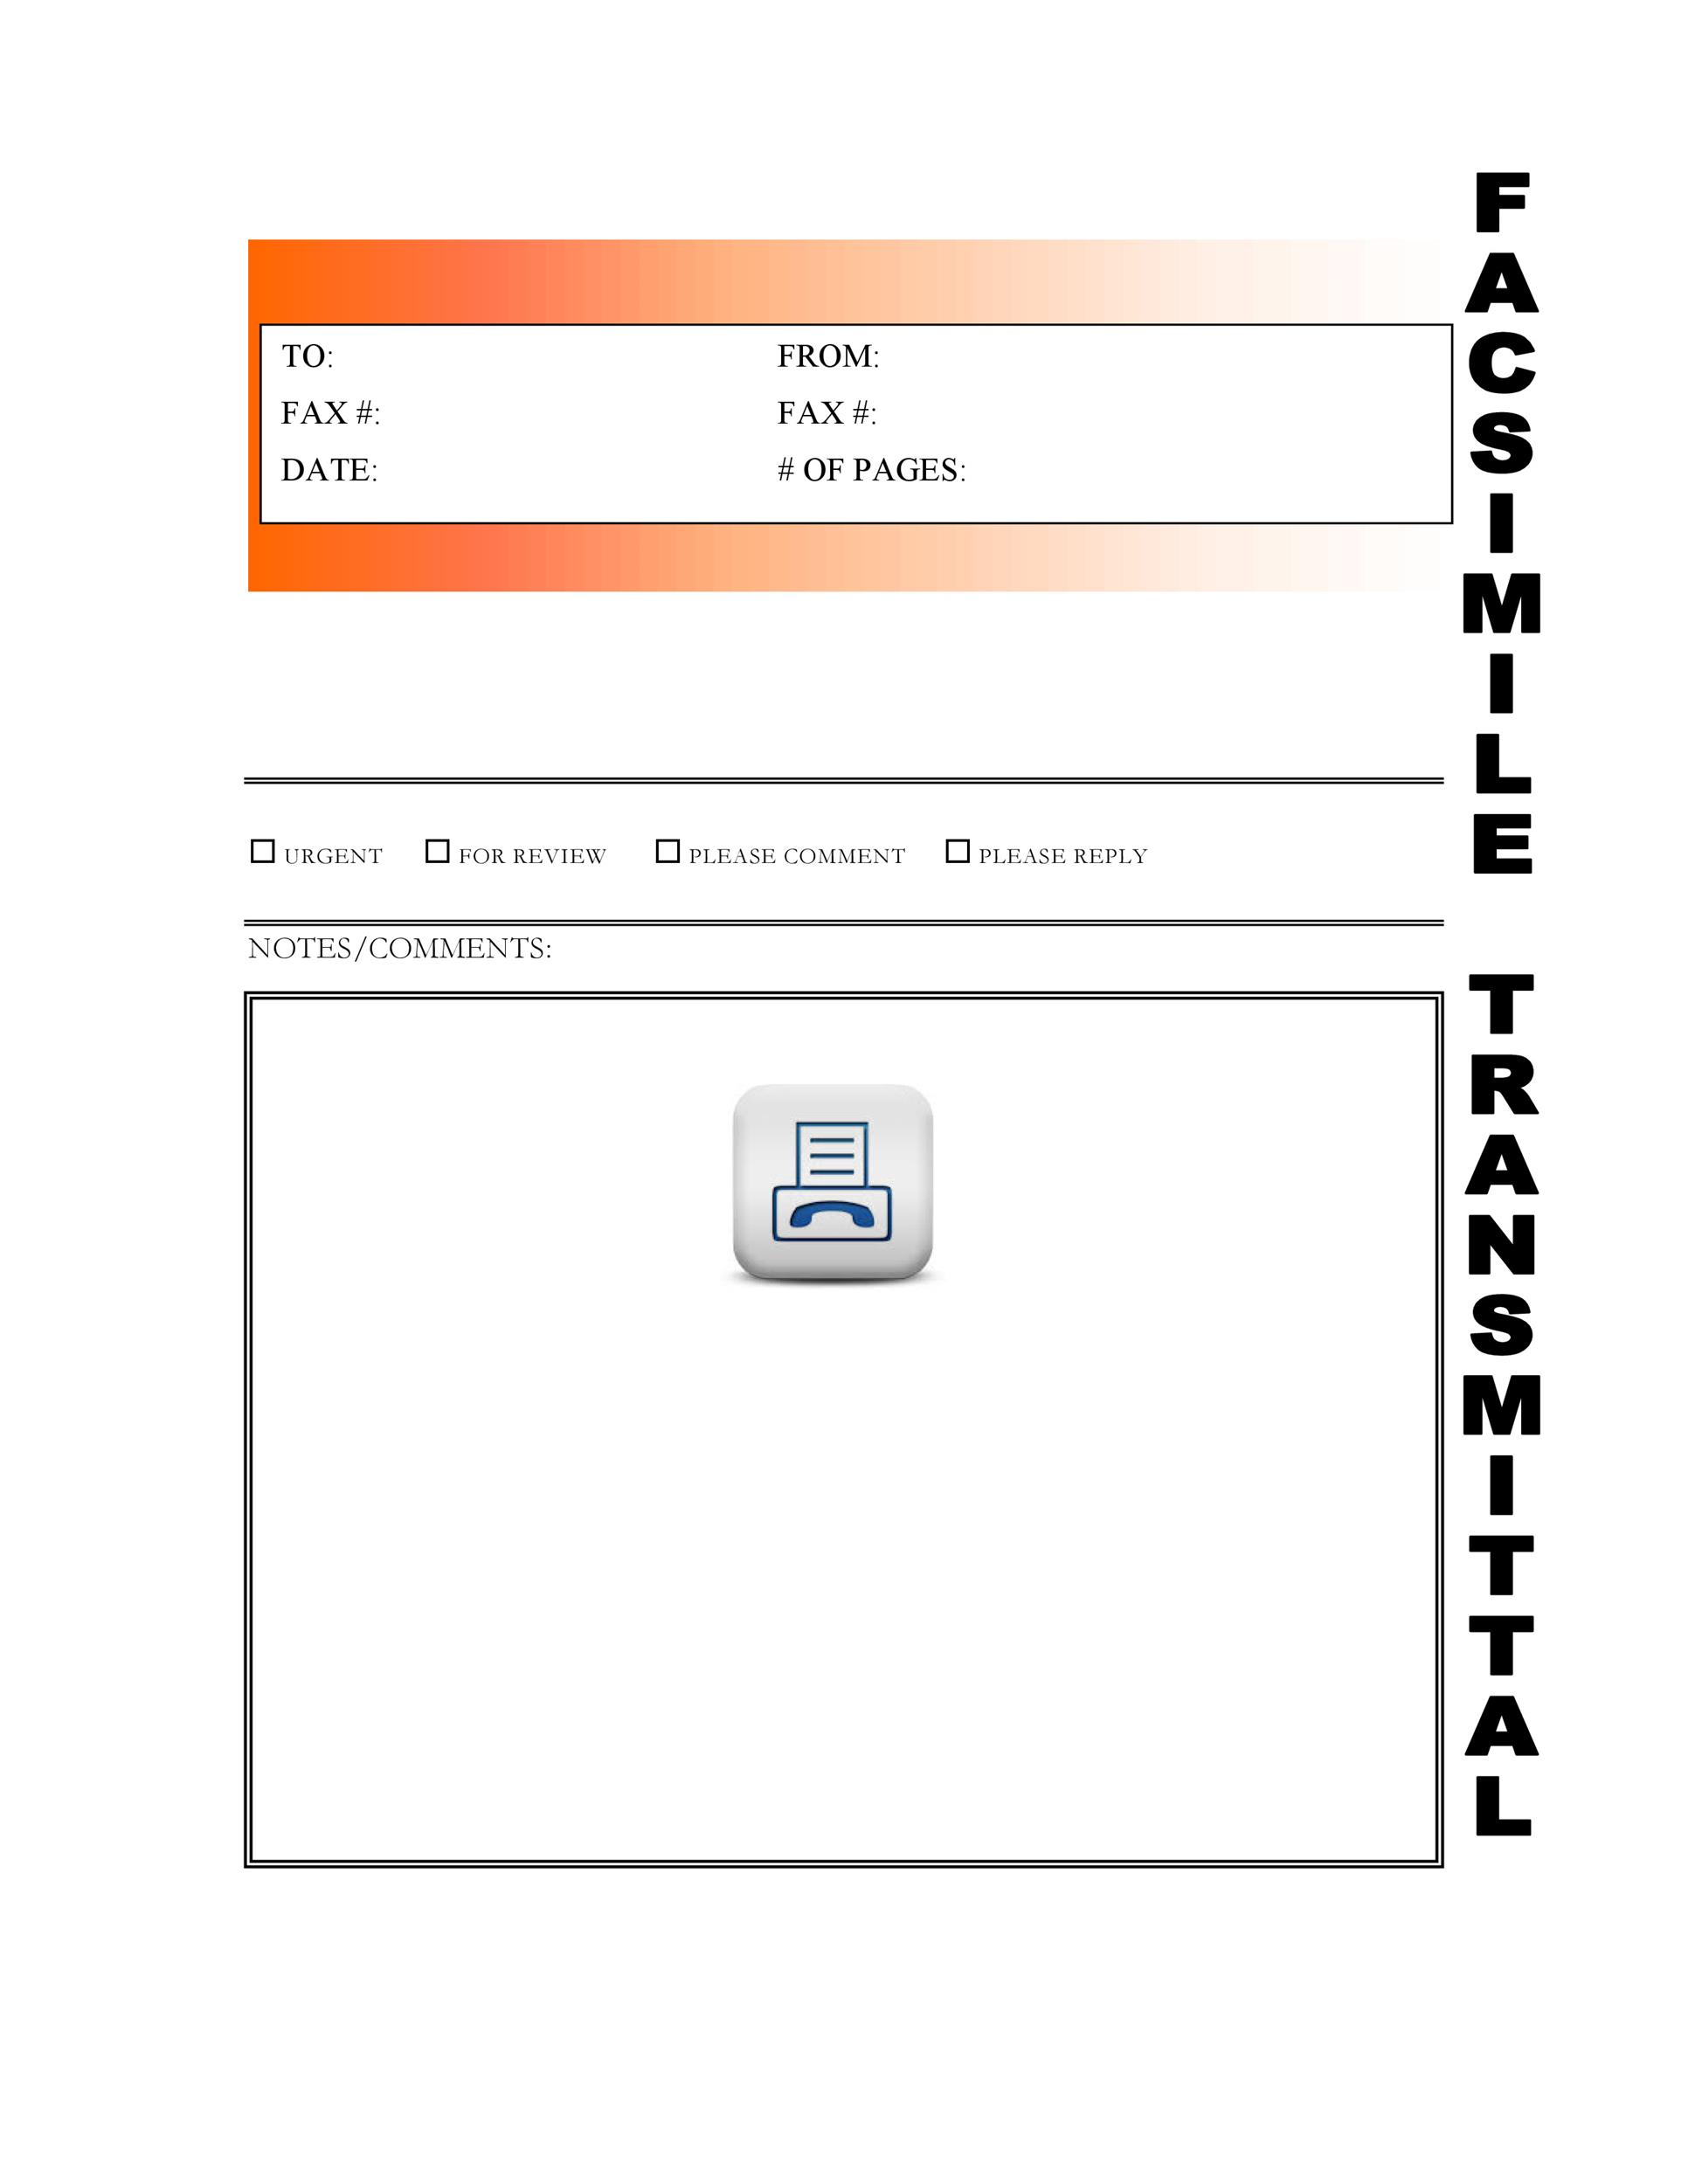 Blank Fax Cover Sheet Free Cover Fax Sheet For Microsoft Office